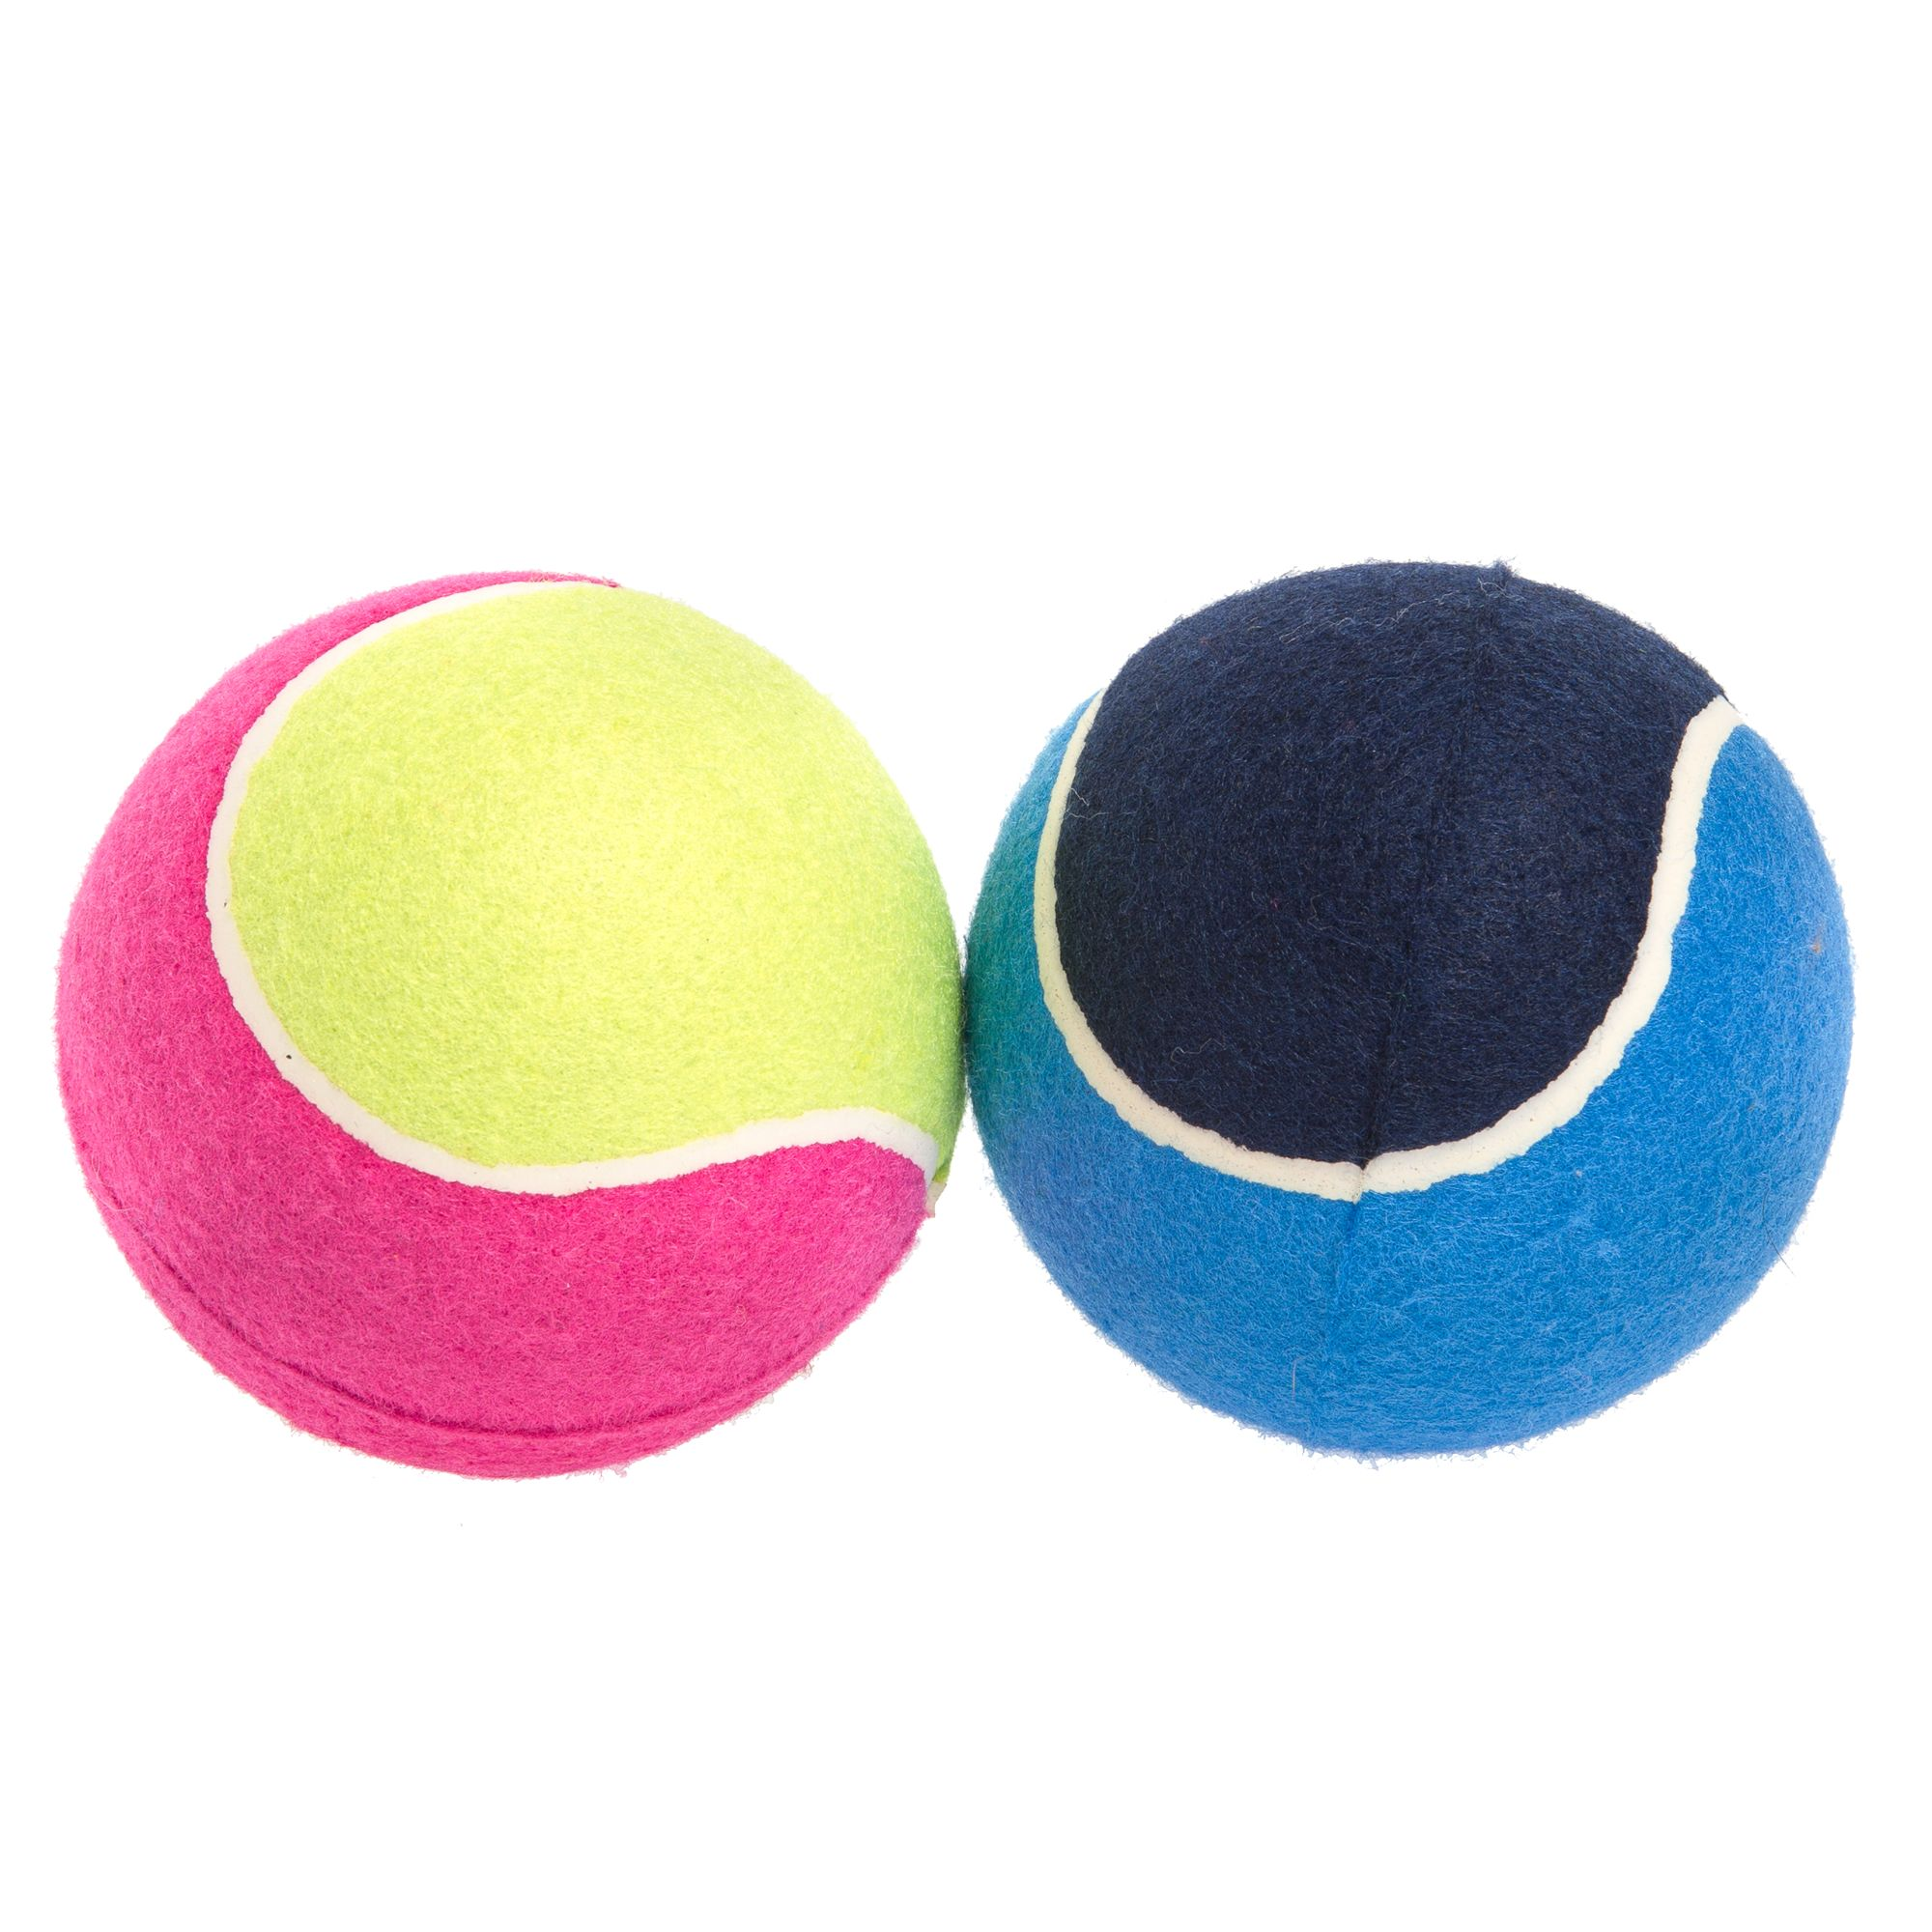 Top Paw Giant Tennis Balls 2-Pack Dog Toy size: 5 in 5263955